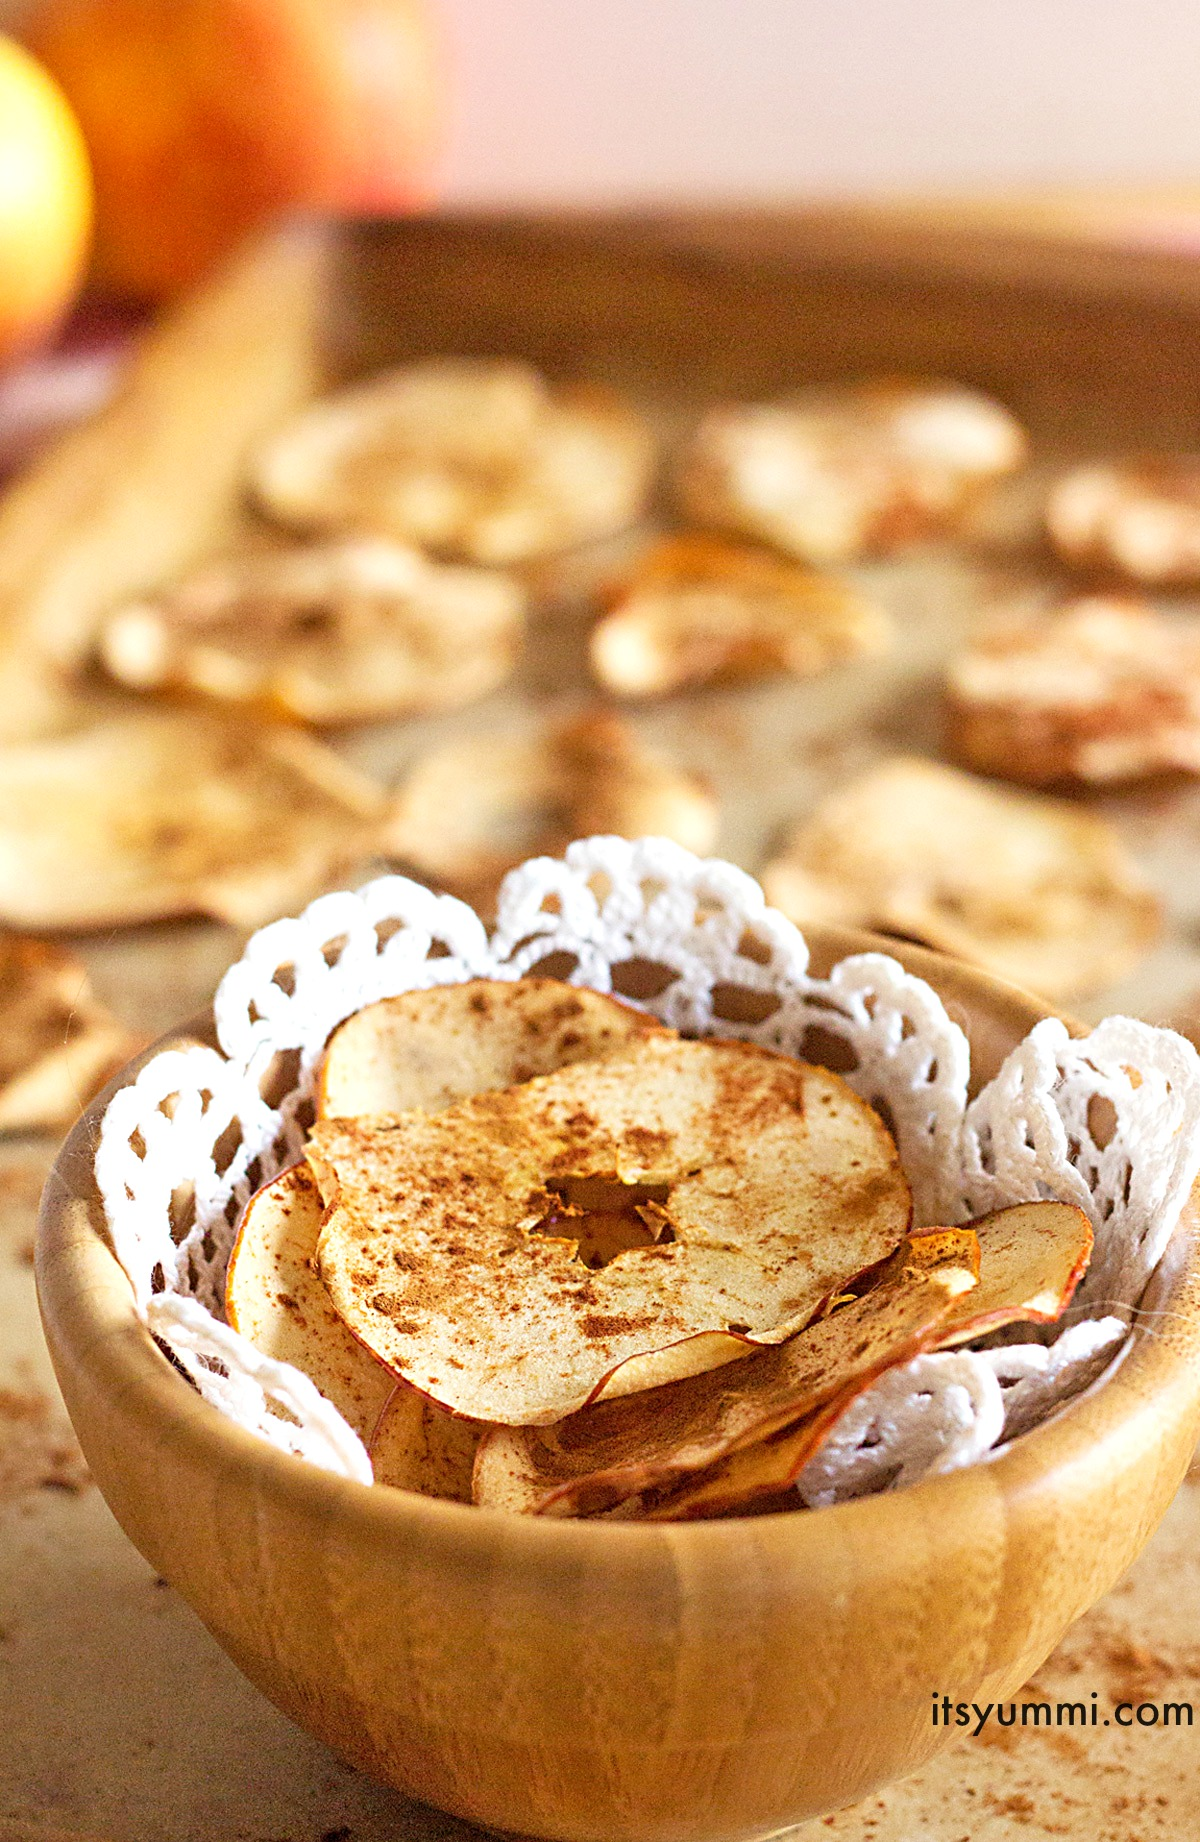 Baked Cinnamon Apple Chips Recipe from ItsYummi.com